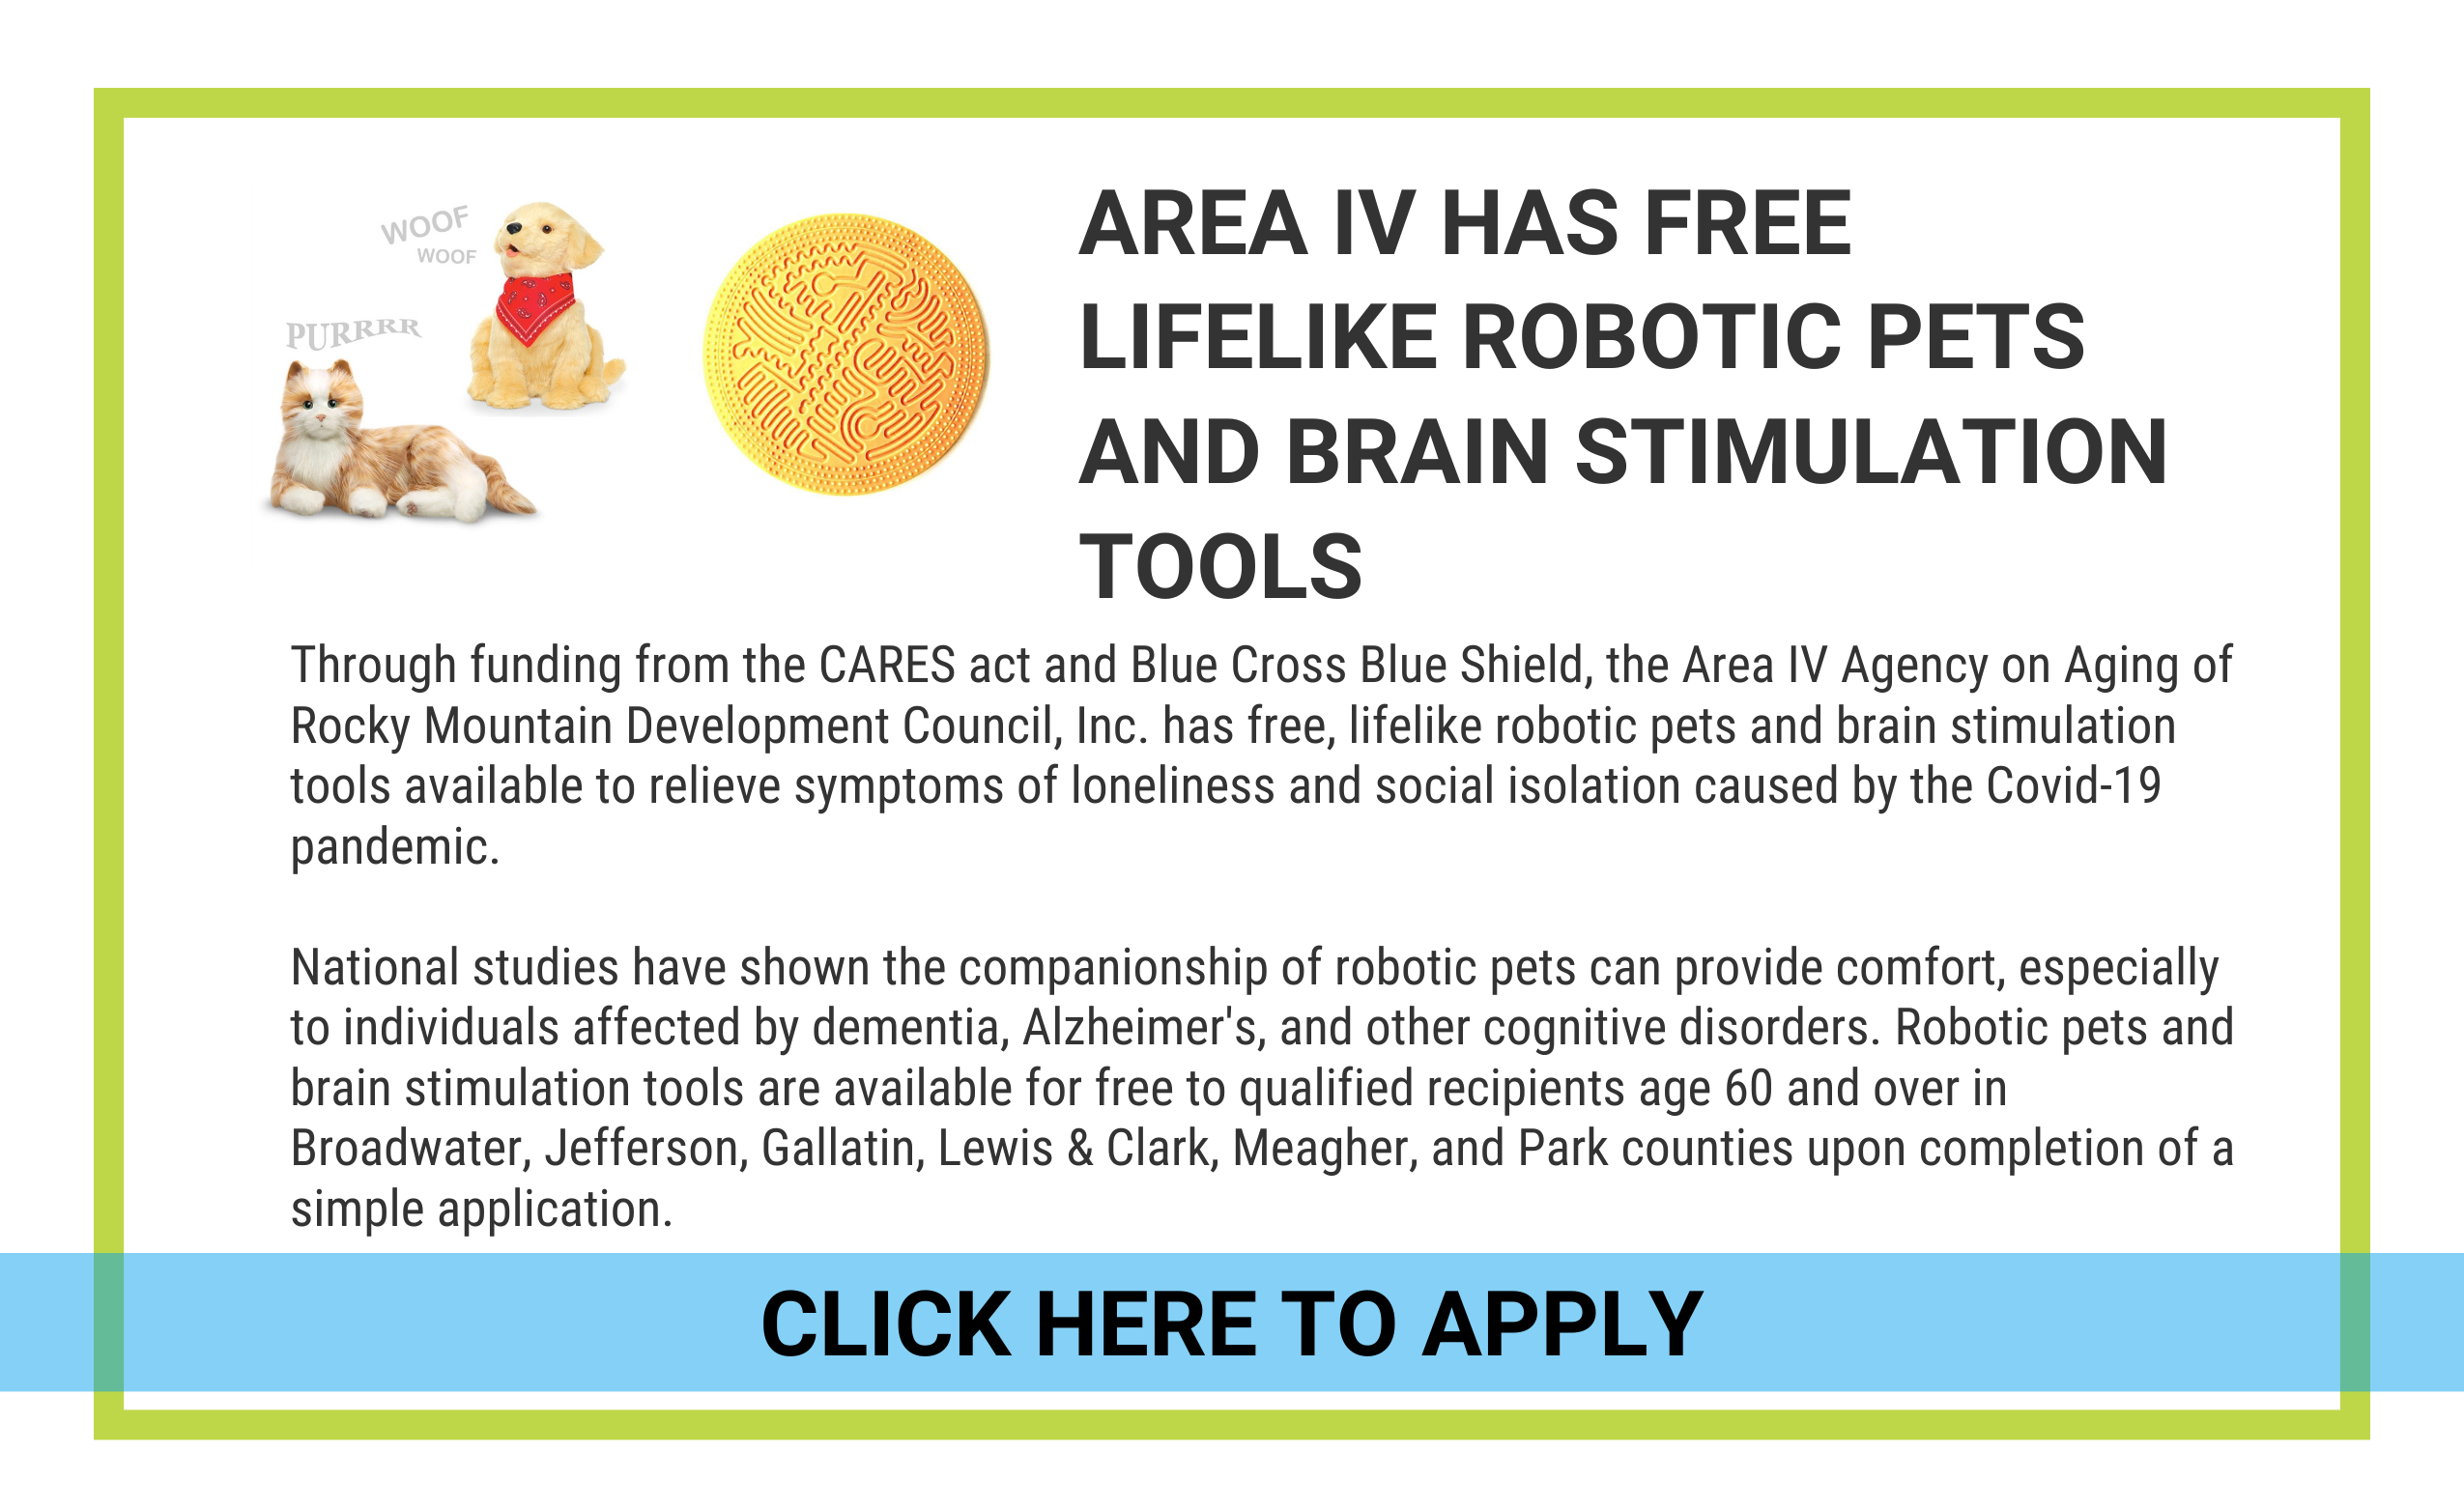 CLICK HERE TO APPLY FOR A ROBOT PET OR BRAIN STIMULATION TOOLS